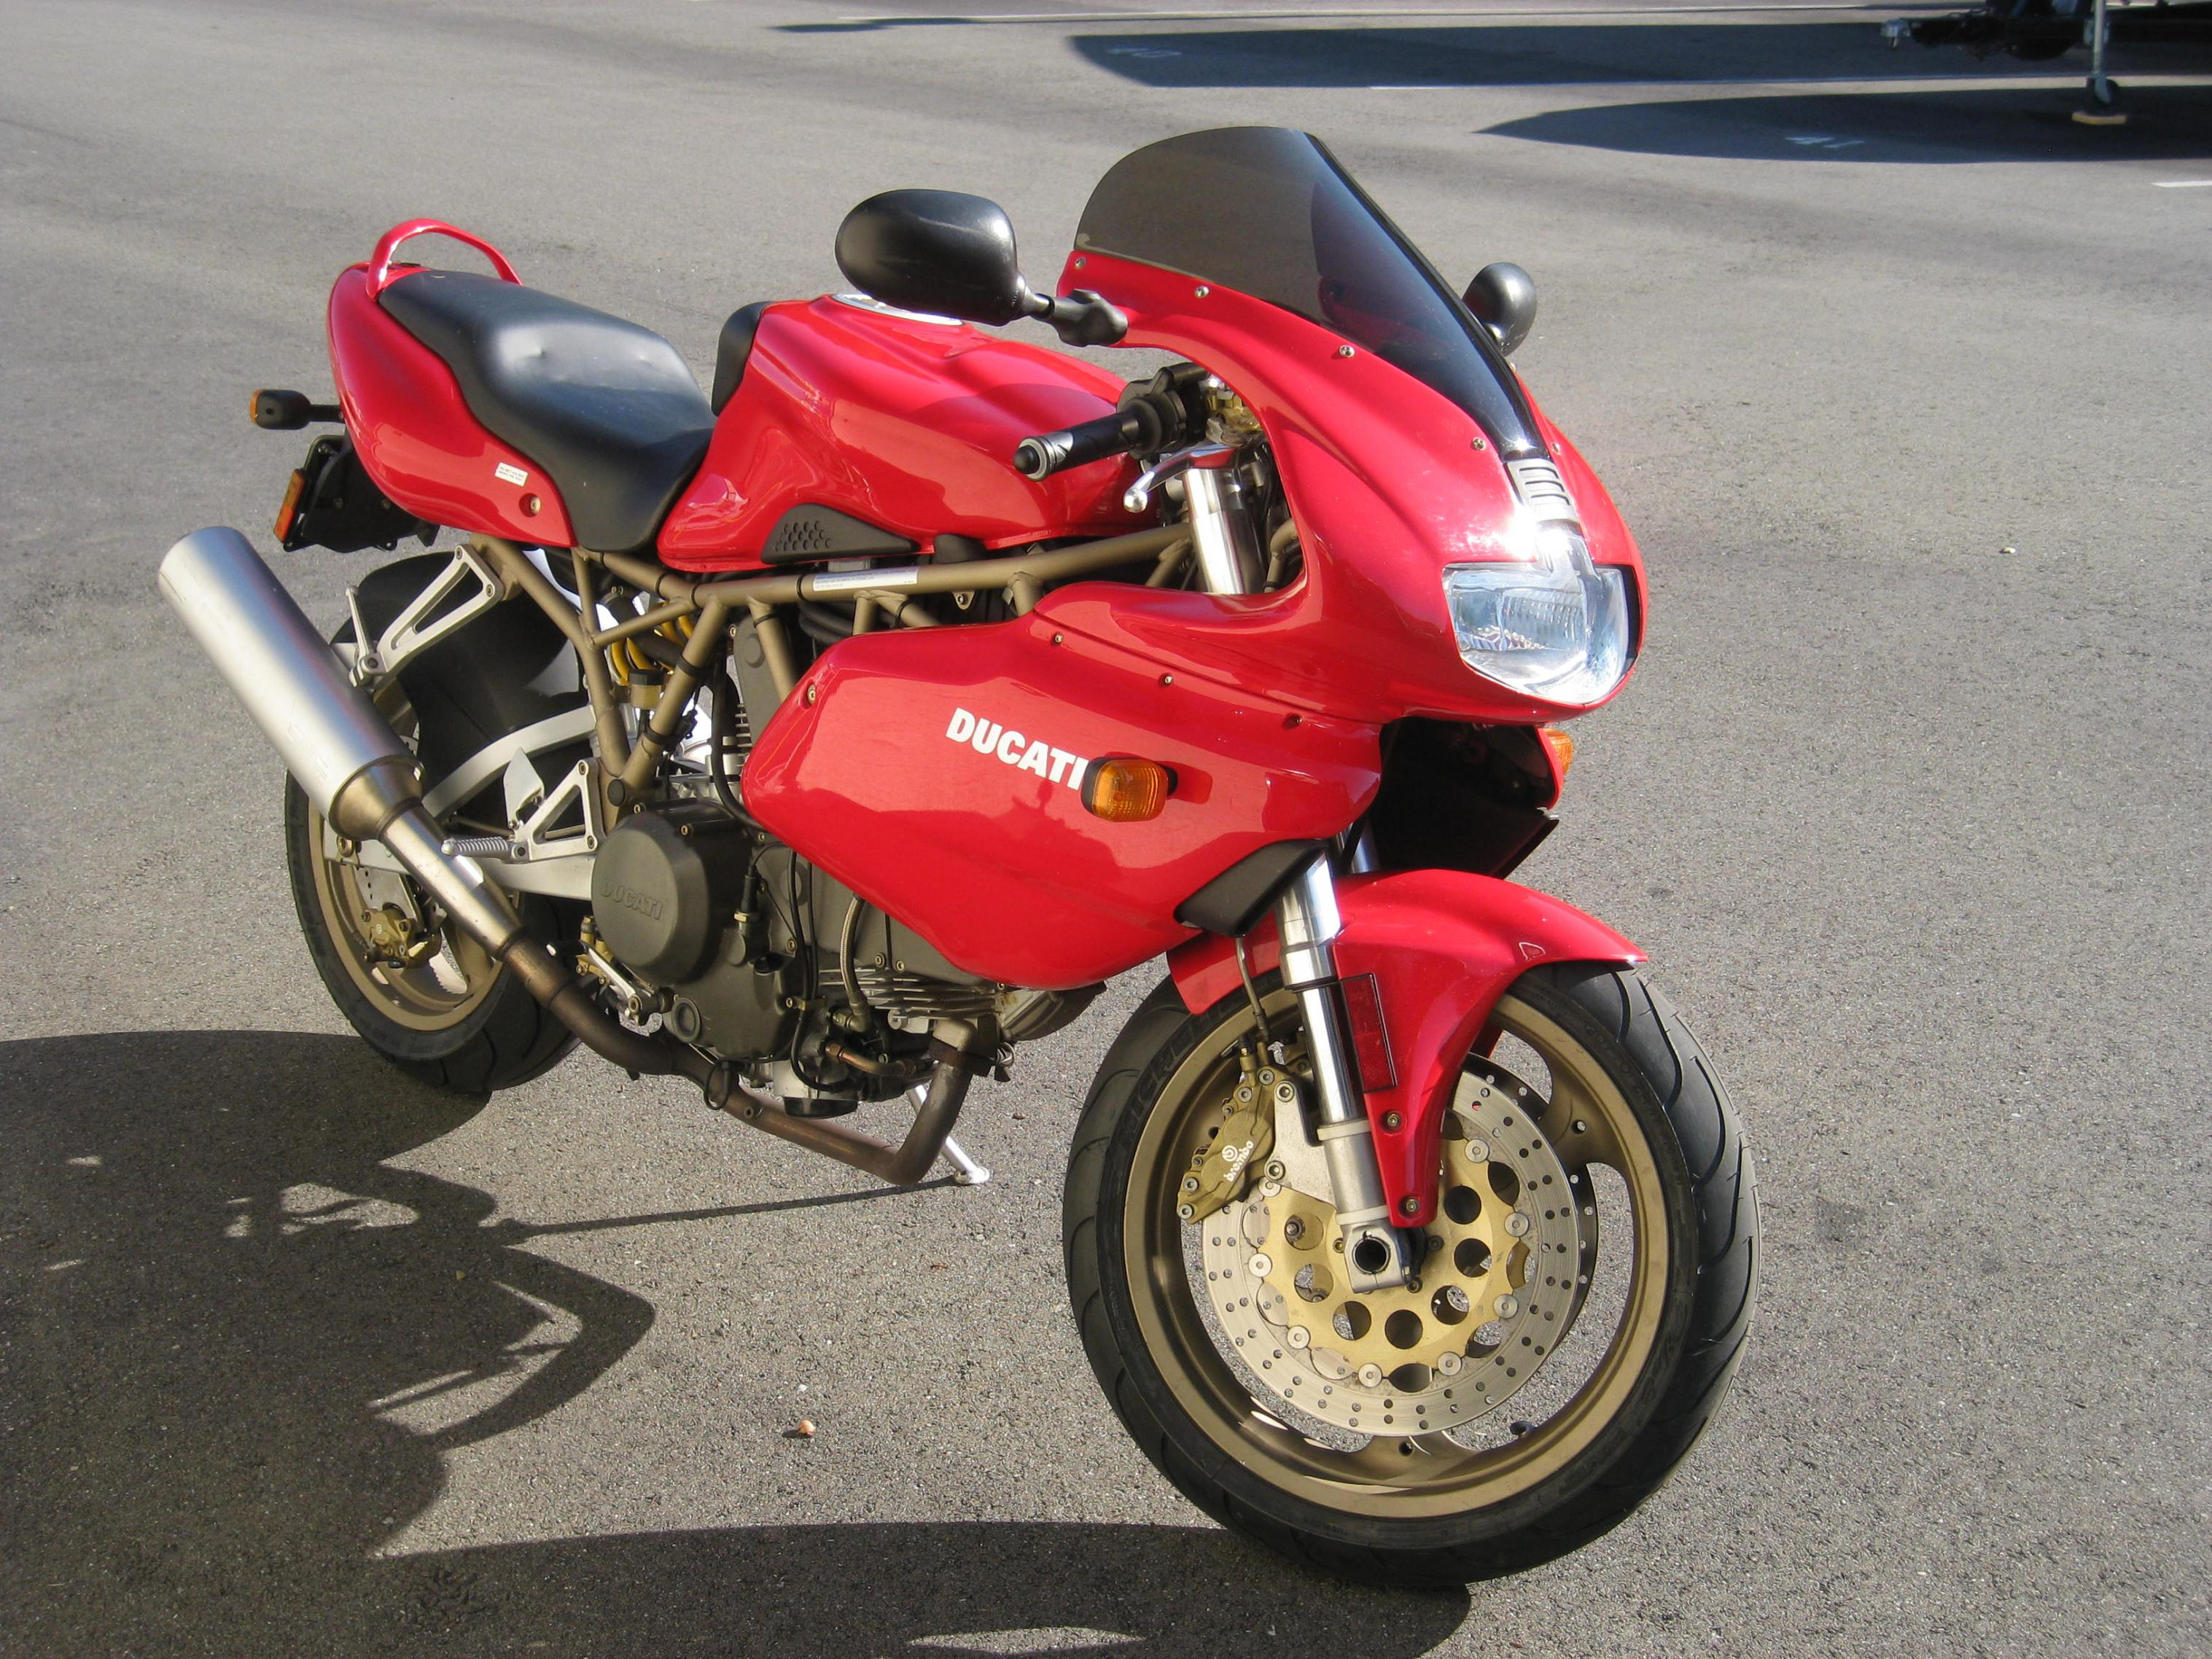 860 workshop manual click here Array - first mods for new to me u002799 750ss  ducati ms the ultimate ducati rh